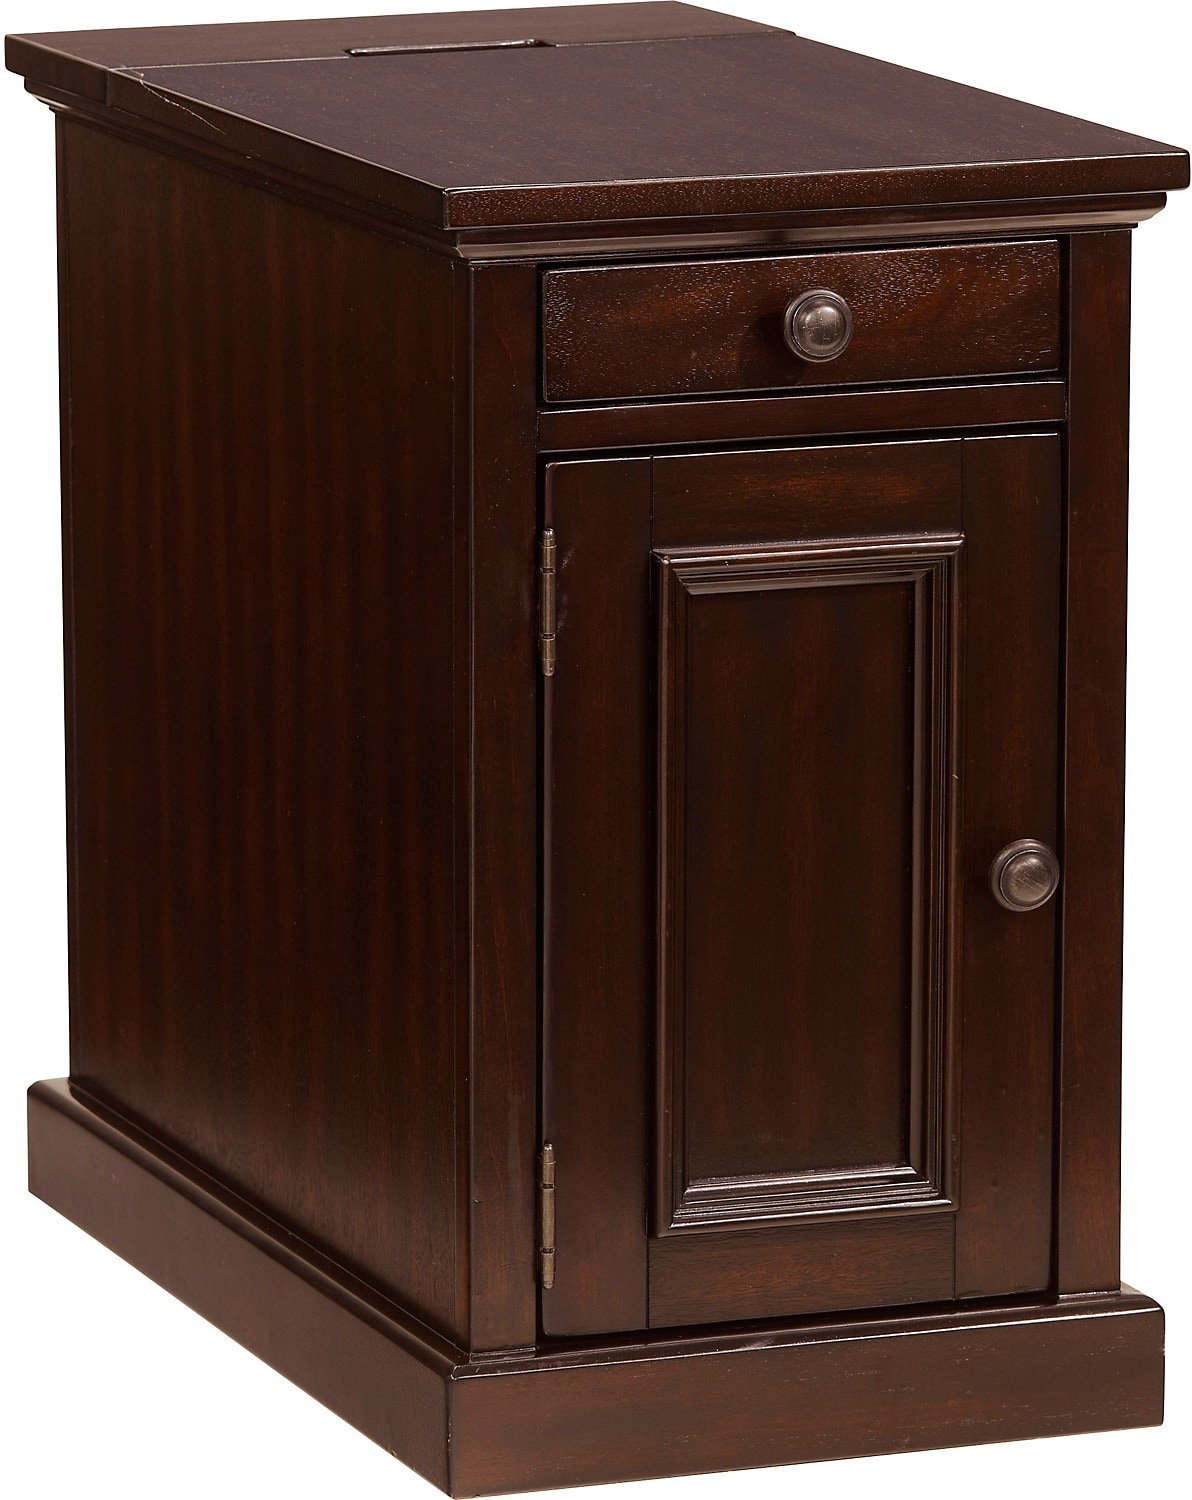 Accent and Occasional Furniture - Coventry Accent Table - Sable